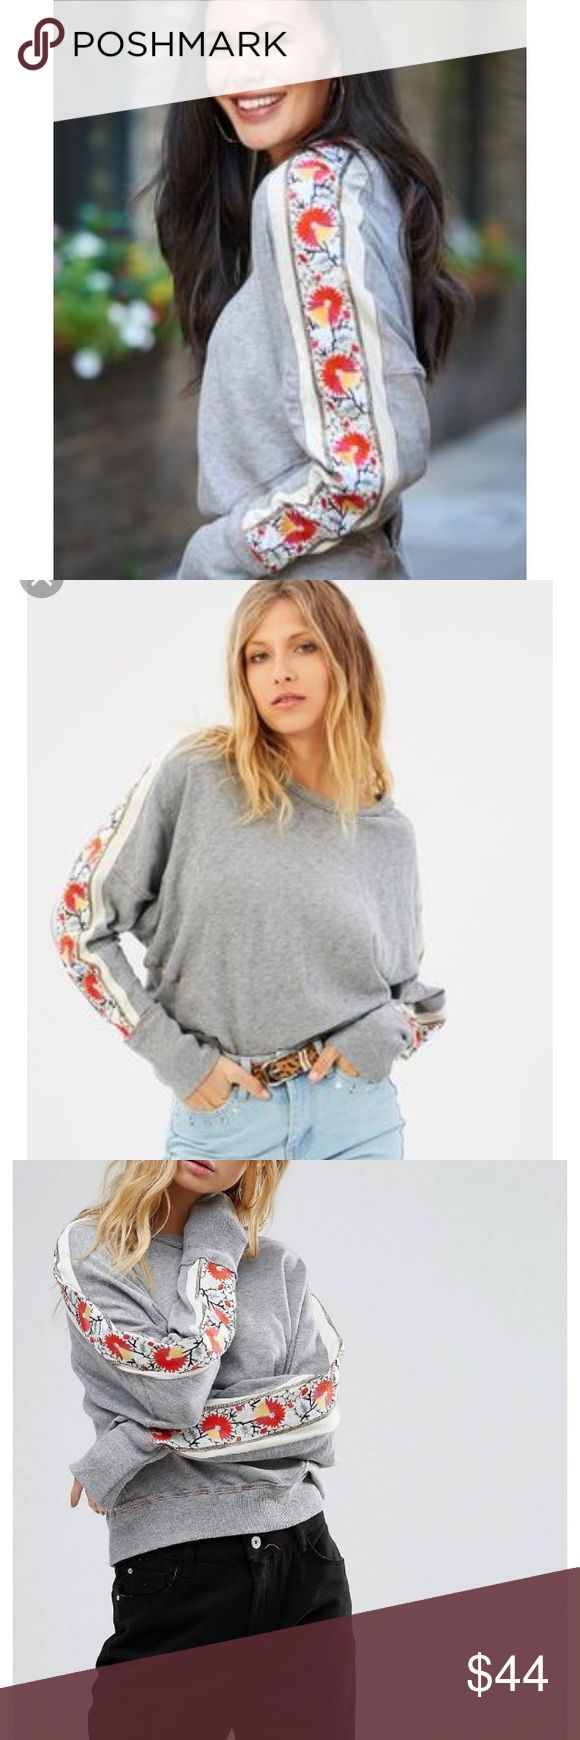 Free People Wall Flower Sweatshirt in Grey Sz S Excellent Condition, worn 1x. Simple grey sweatshirt embellished with a beautiful, bright floral striped down each sleeve in Cropped, cinched waist. Dolman/batwing style sleeves. Crewneck. Doesn't run oversized, true Sm. Free People Tops Sweatshirts & Hoodies